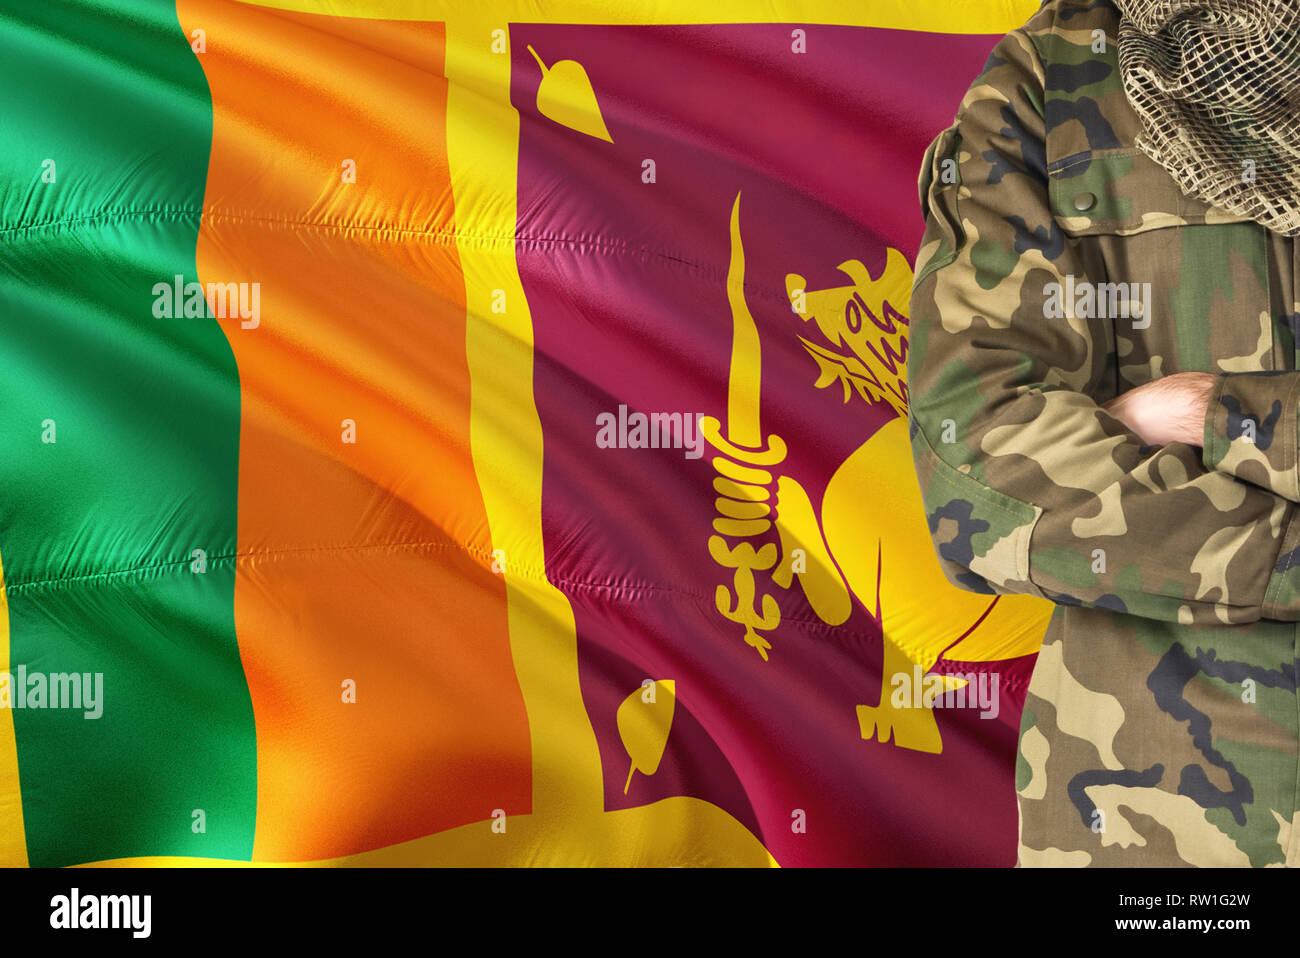 Sri Lanka Army Special Force High Resolution Stock Photography And Images Alamy